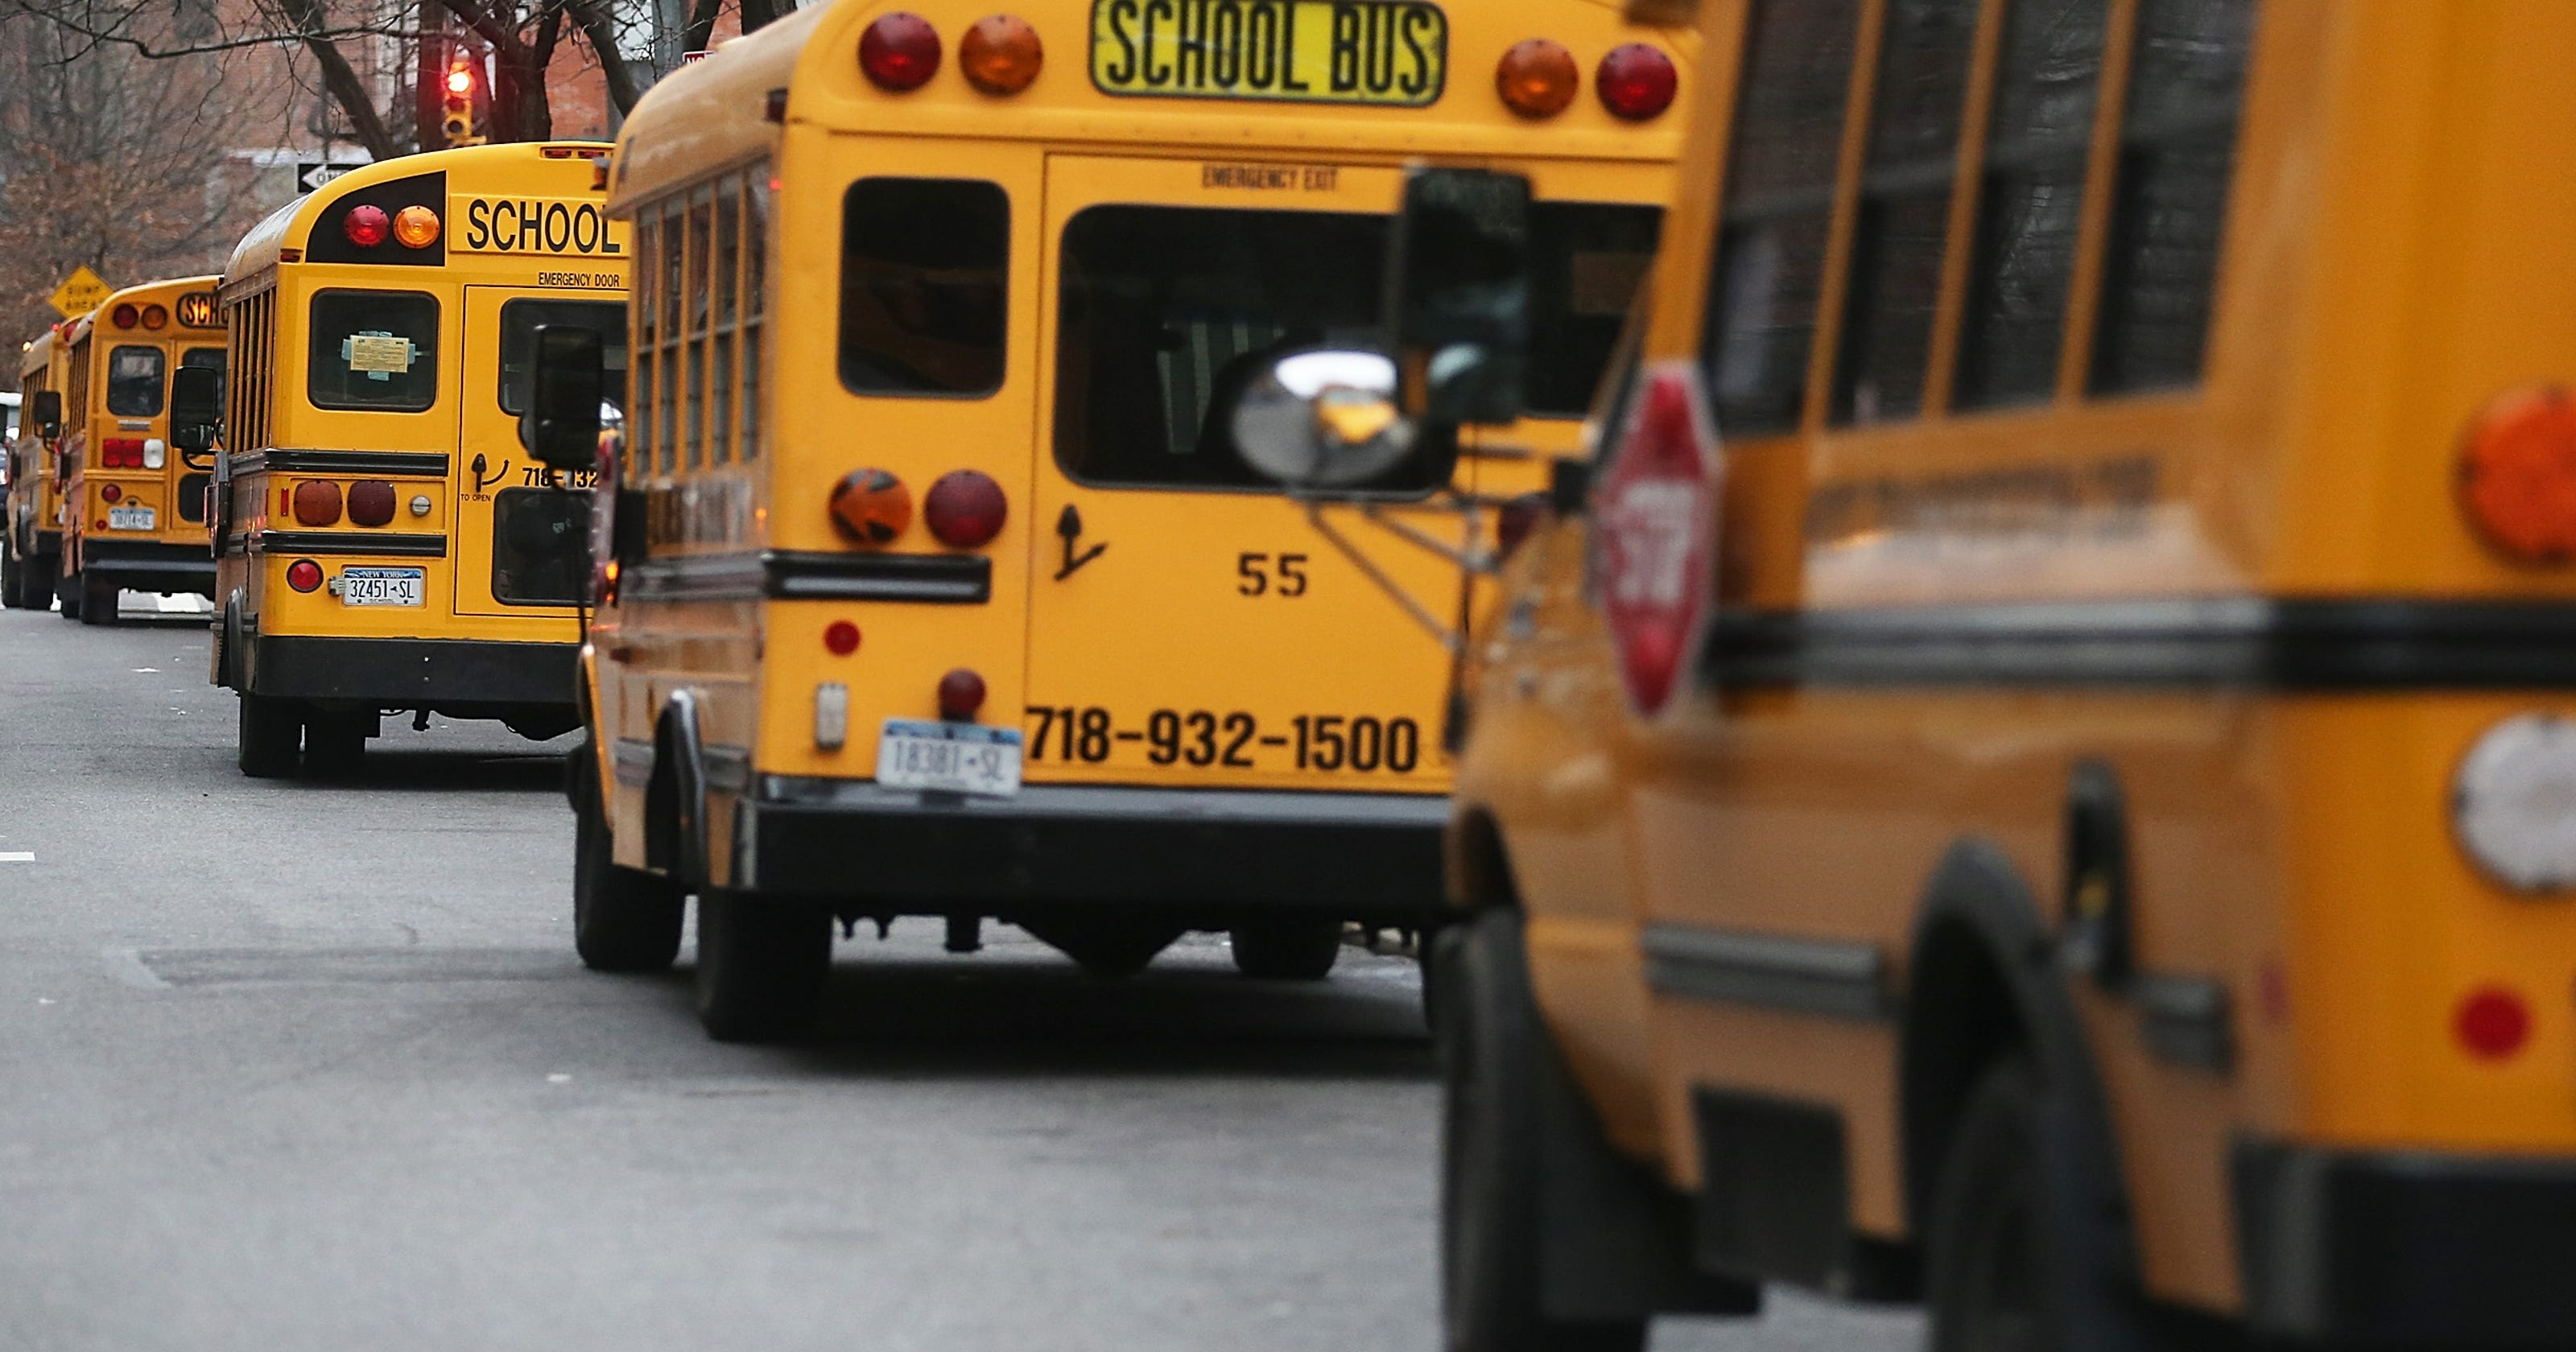 Attorney: Two Sodus girls sexually assaulted on school bus